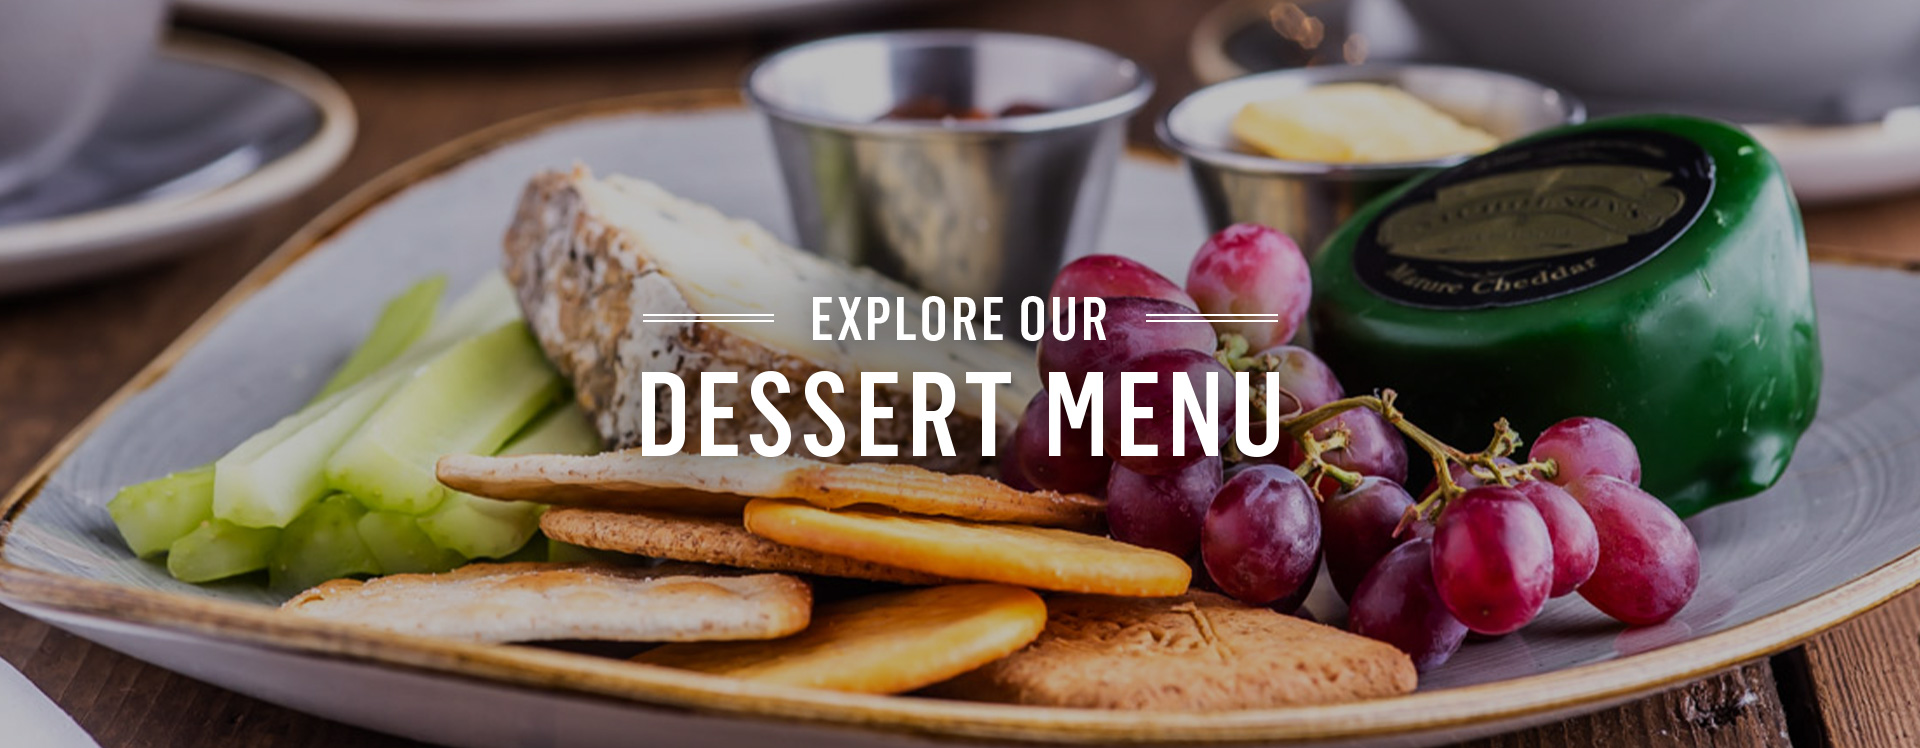 Dessert menu at Doggett's Coat and Badge - Book a table